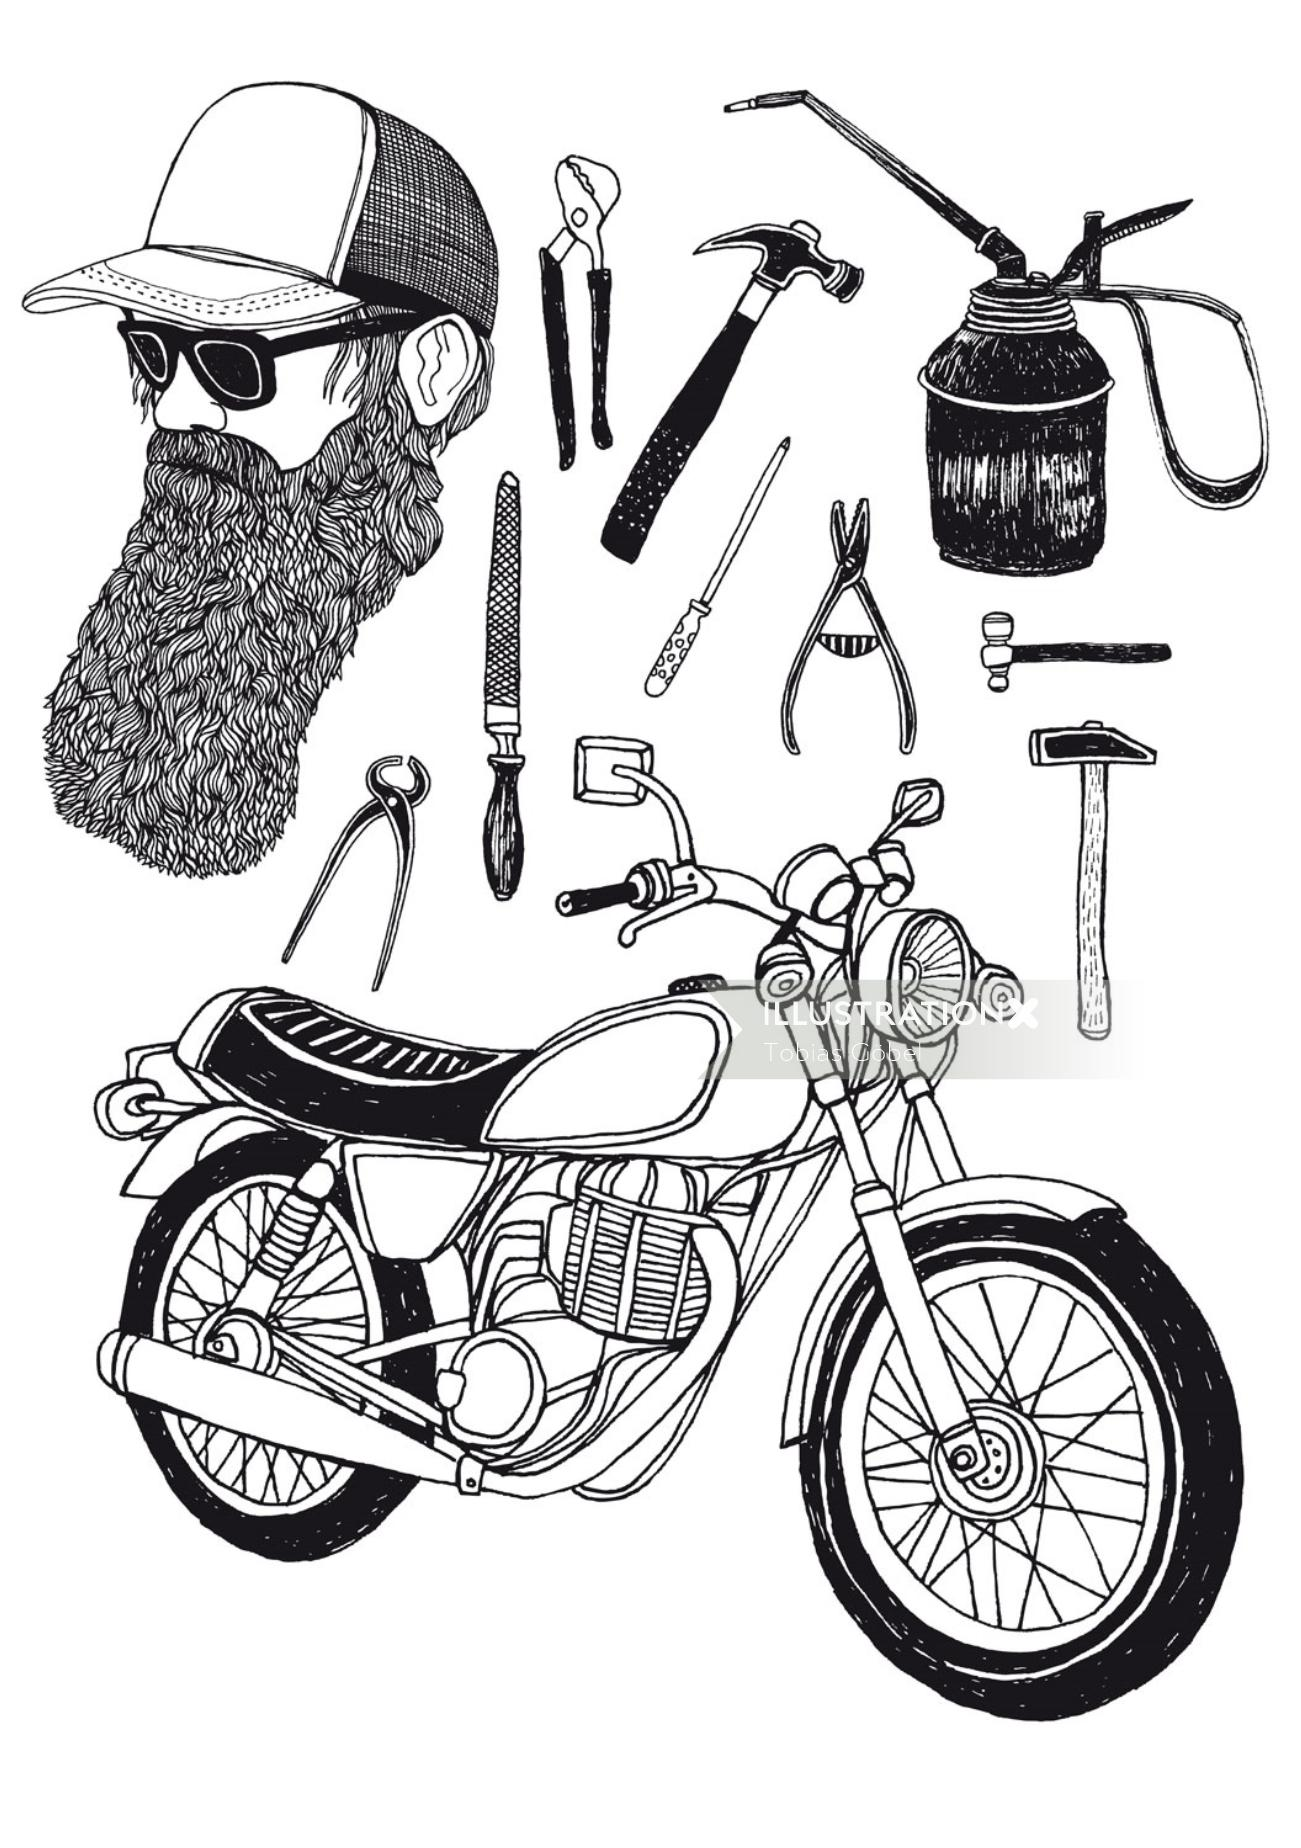 Line art of Bicycle accessories